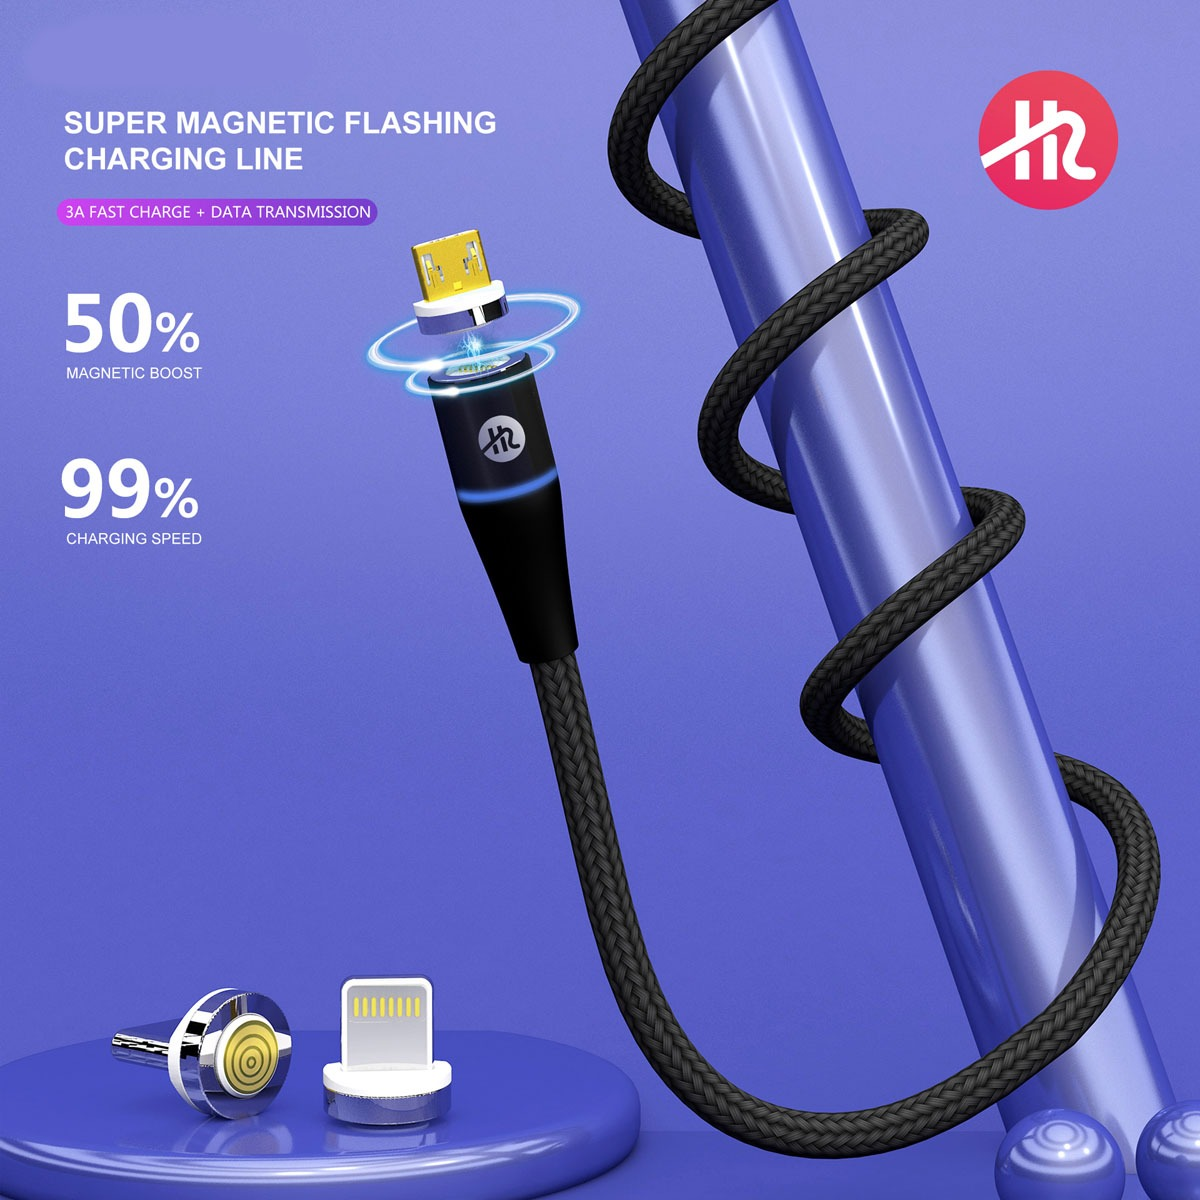 H2 Gadgets 7 Pin Super Fast Magnetic Cable 3in1